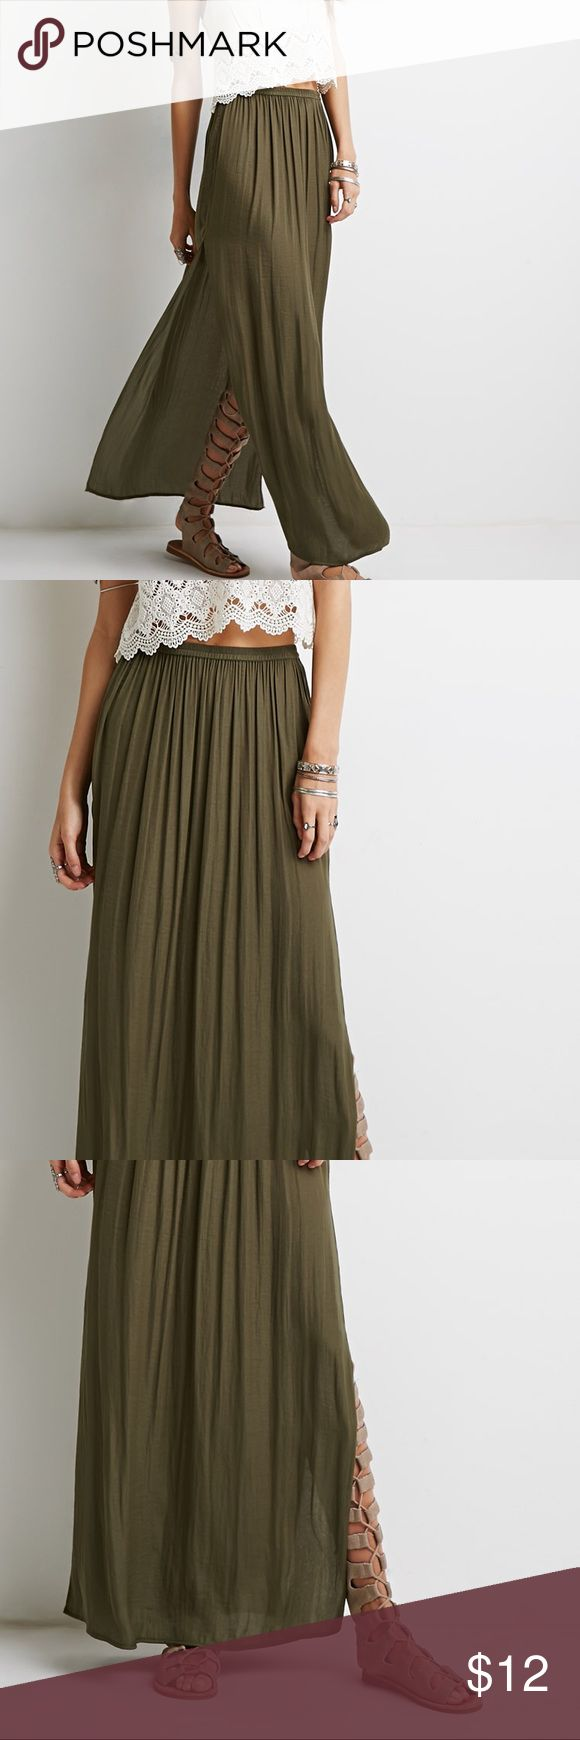 Olive maxi skirt Beautiful maxi skirt from Forever21. Has a high skit on each side of the skirt and an elastic waist. Nice flowy material with a bit of shine to it. Only worn a couple of times. Perfect summer skirt! Forever 21 Skirts